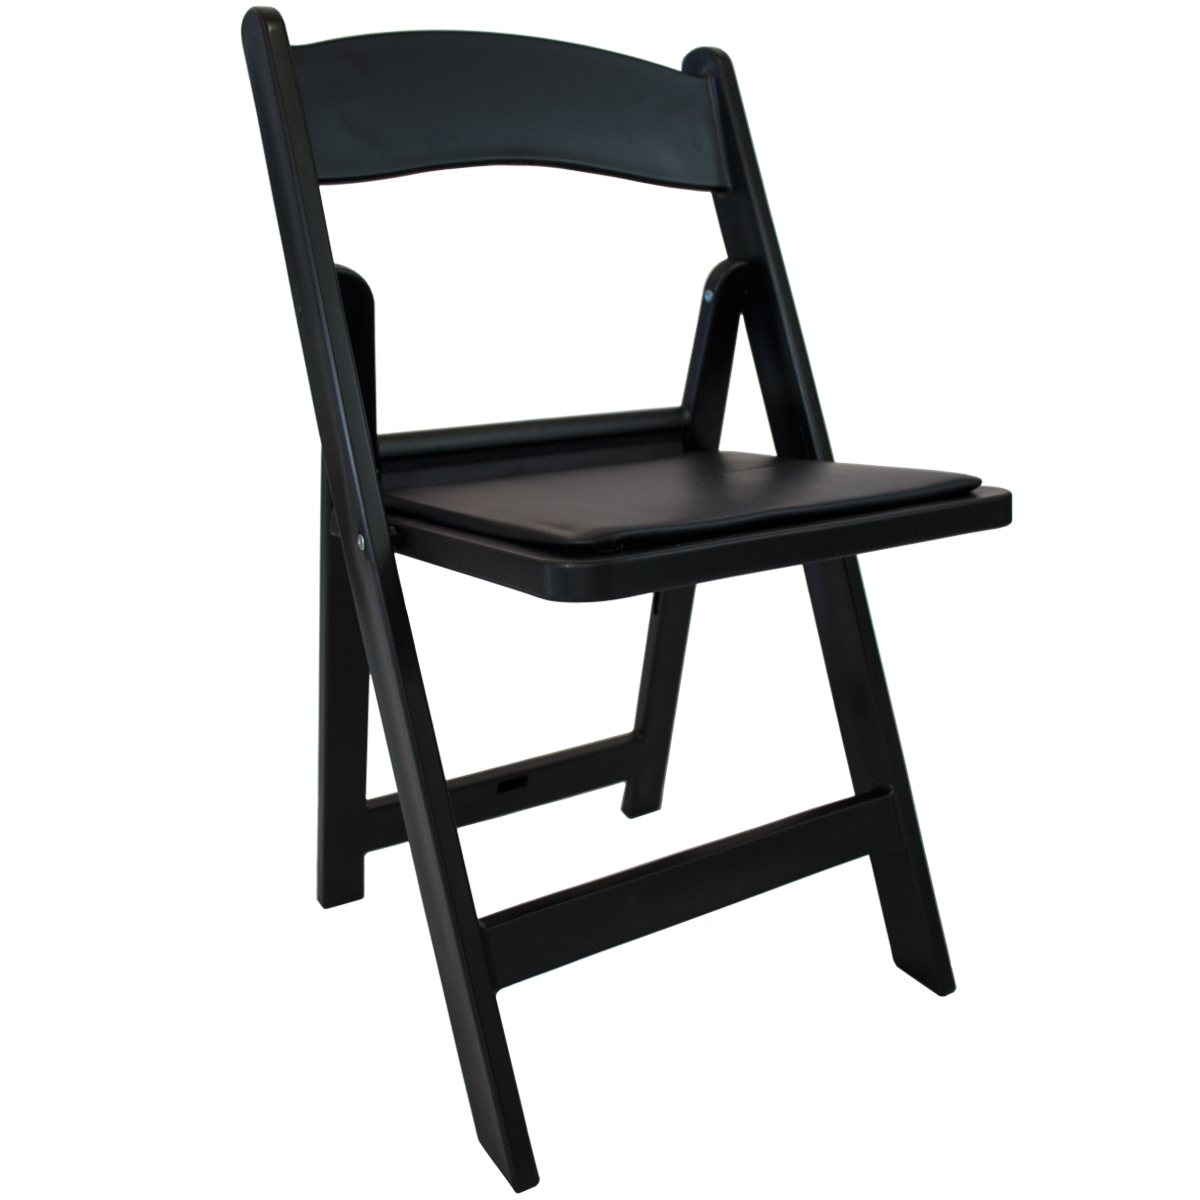 Download Folding Chair Free Transparent Image HD HQ PNG ...